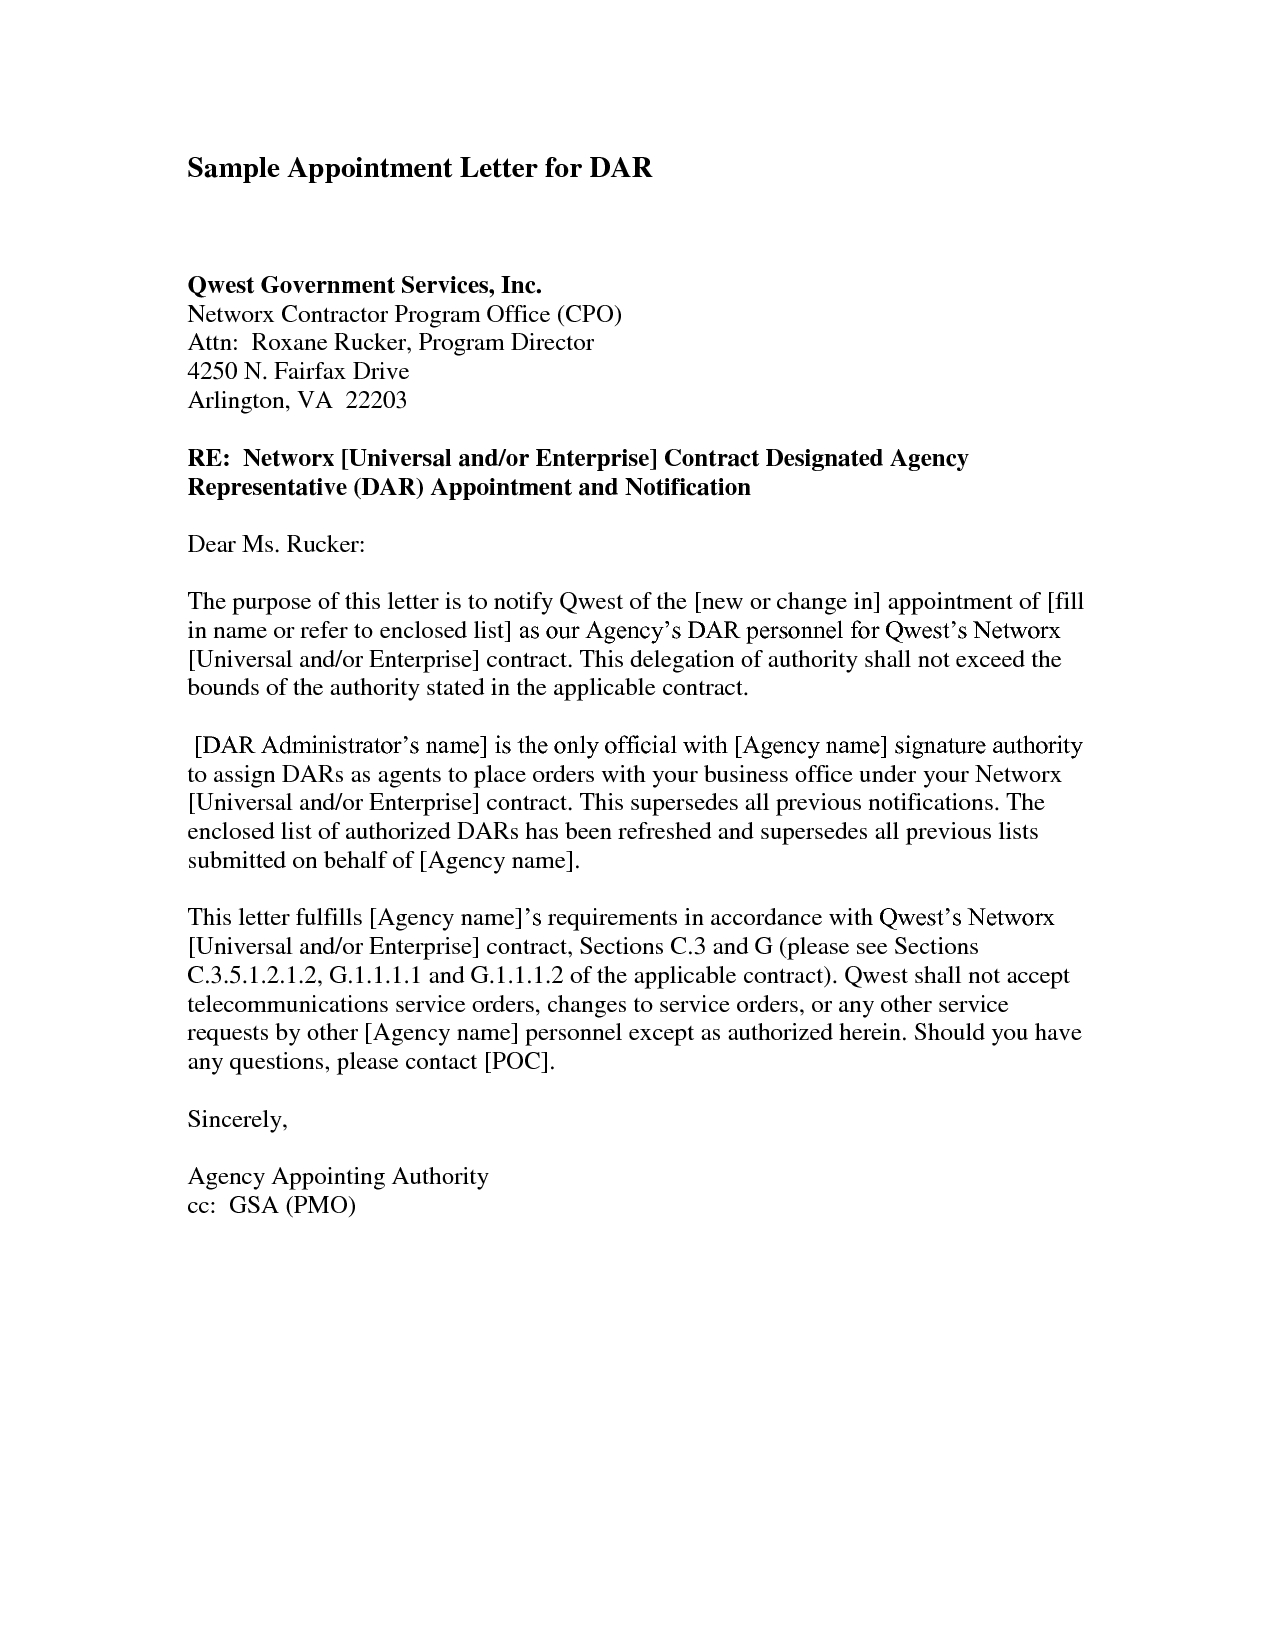 Dental Patient Dismissal Letter Template - Trustee Appointment Letter Director Trustee is Appointed or